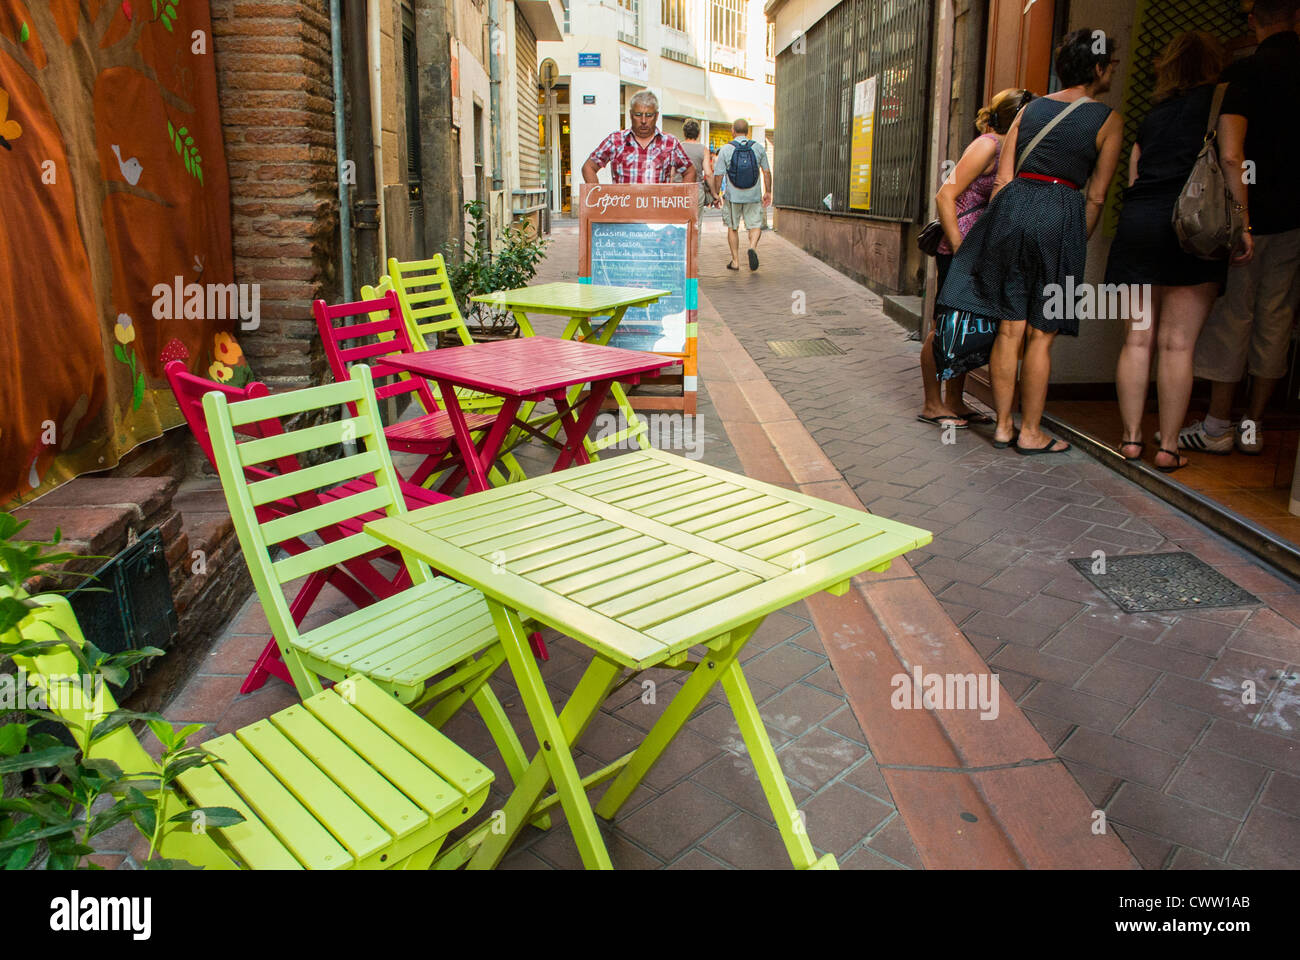 Colorful Wooden Cafe Tables Chairs High Resolution Stock Photography And Images Alamy